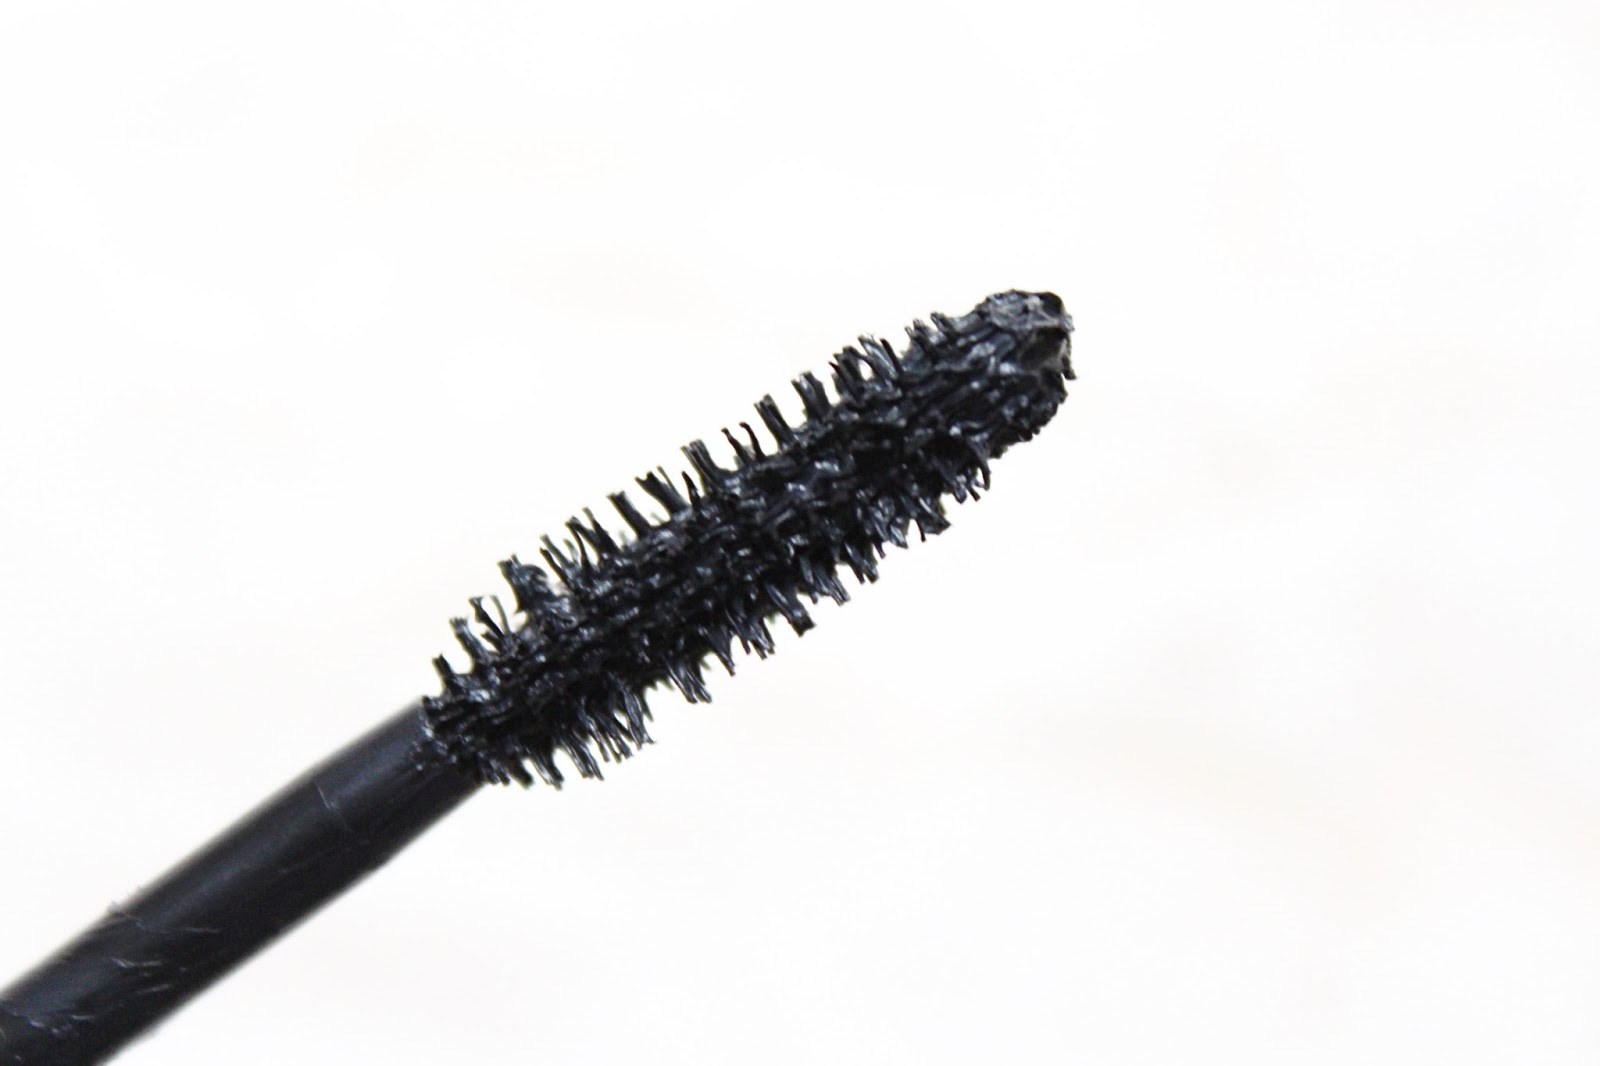 Maybelline Total Temptation Mascara & Brow Definer Review